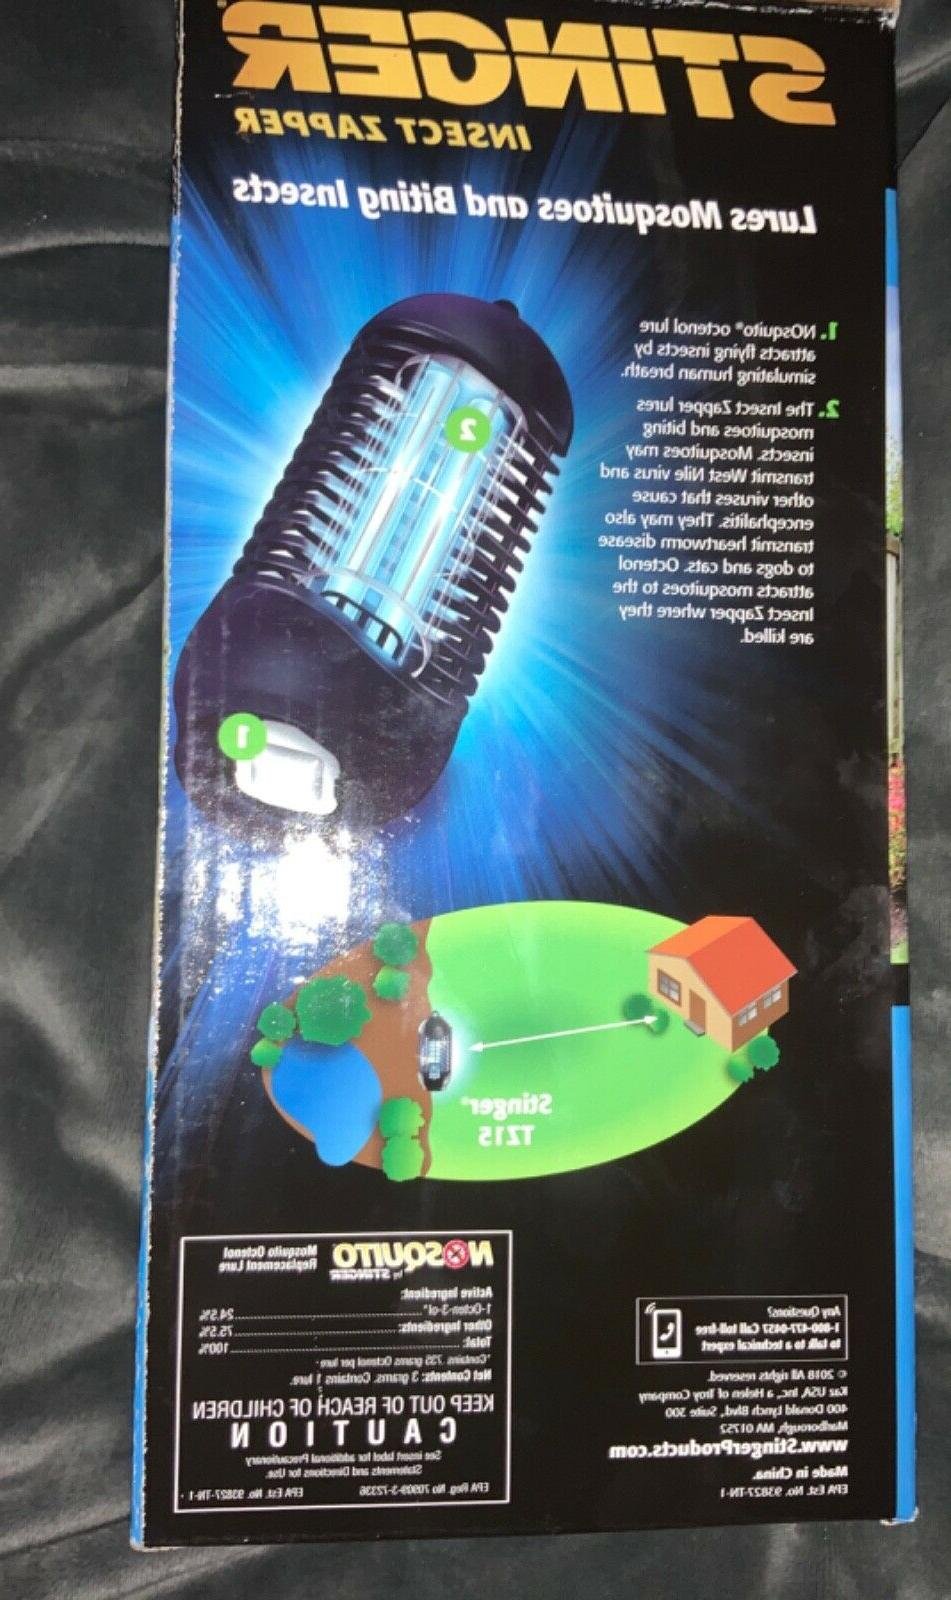 Stinger Insect Killer Electric zapper - Covers 1/2 Acre